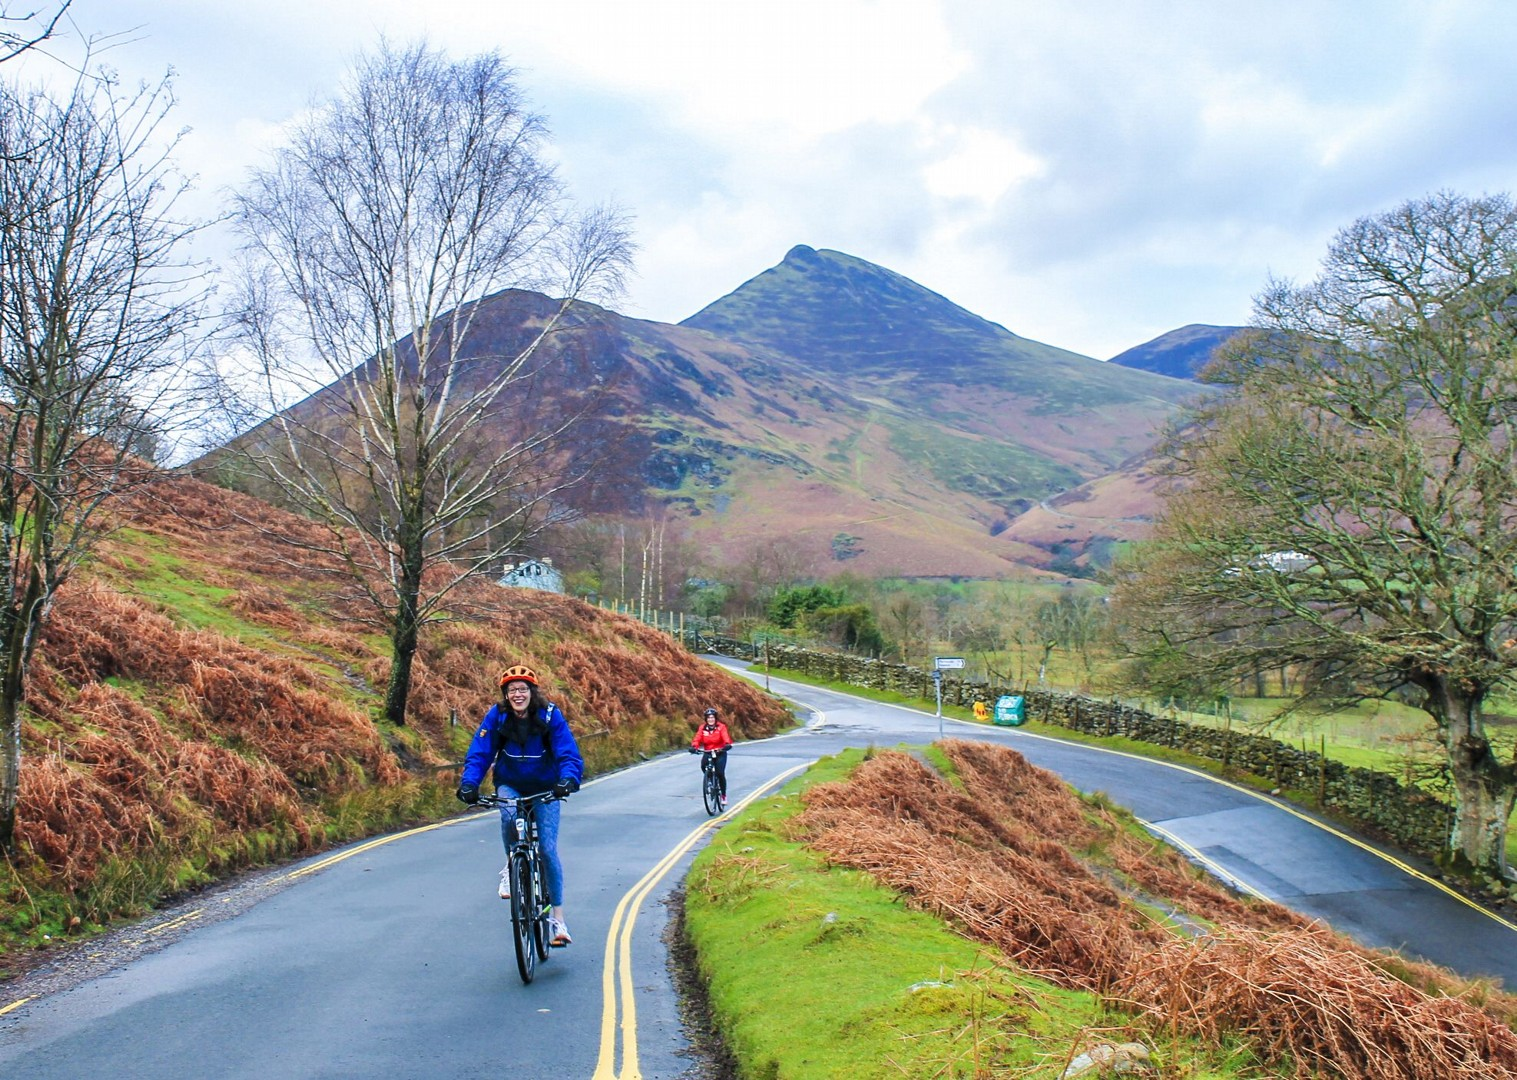 lake-district-fells-countryside-nature-relaxing-cycle-tour.jpg - UK - Lake District - Derwent Water - Guided Leisure Cycling Holiday - Leisure Cycling